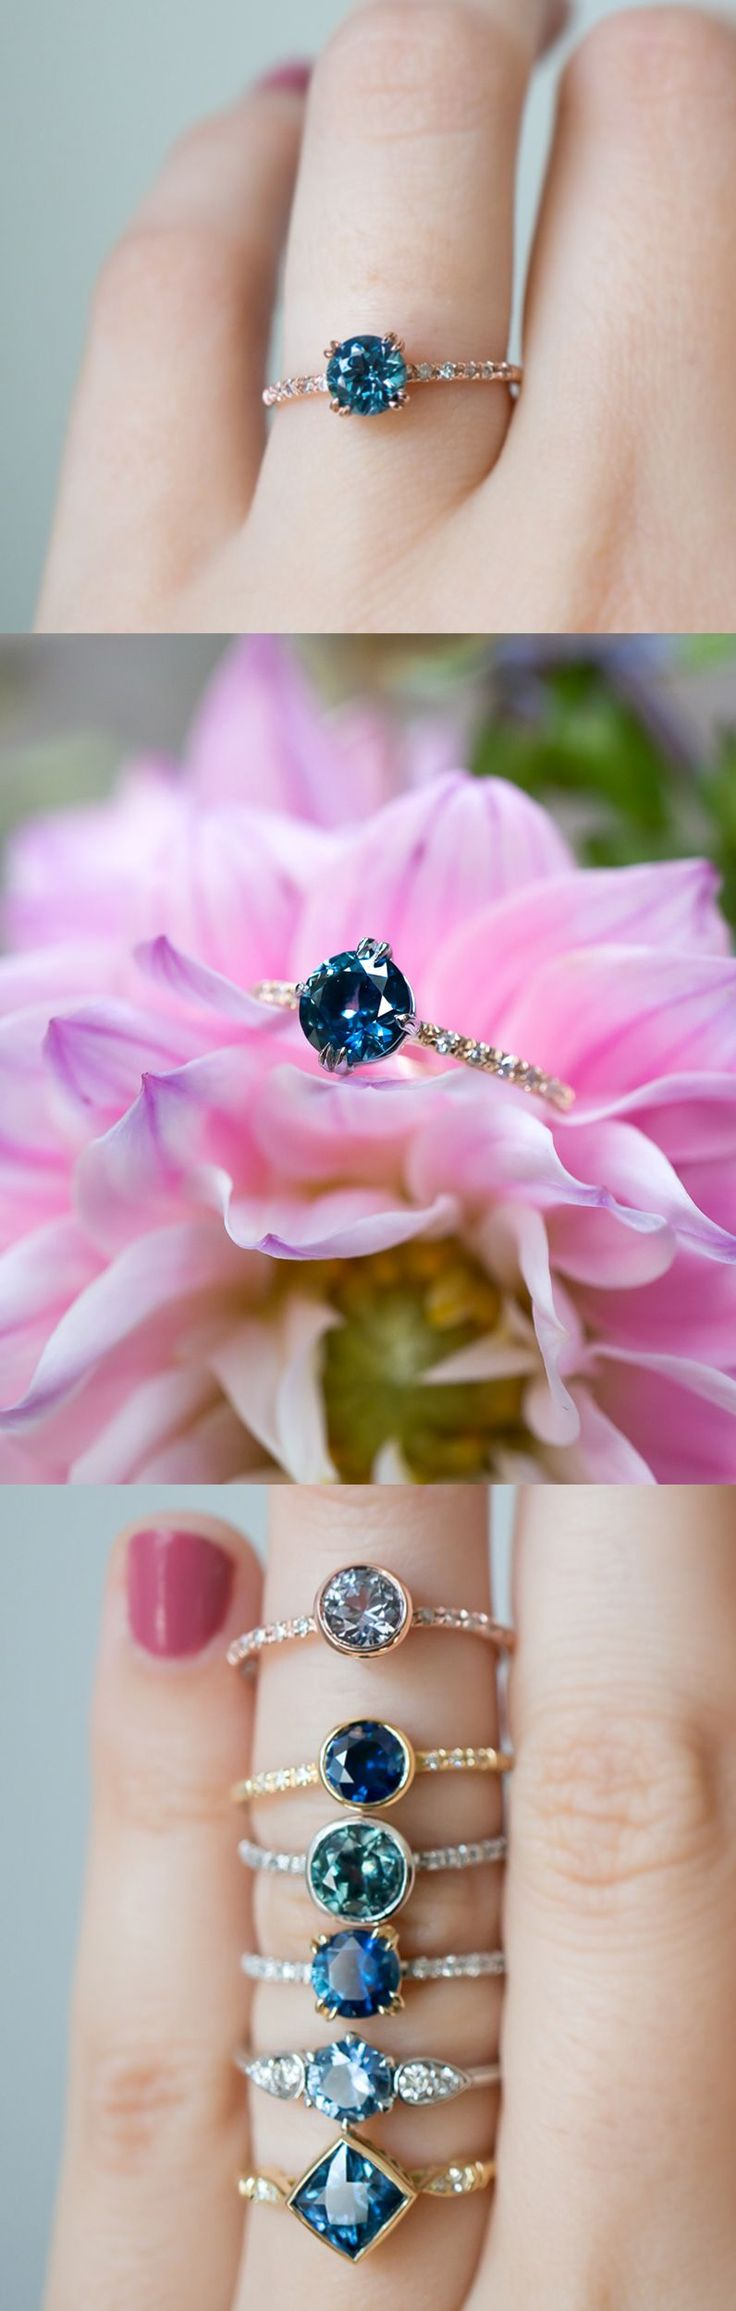 182 best Sparkles and Shinies images on Pinterest | Engagement rings ...